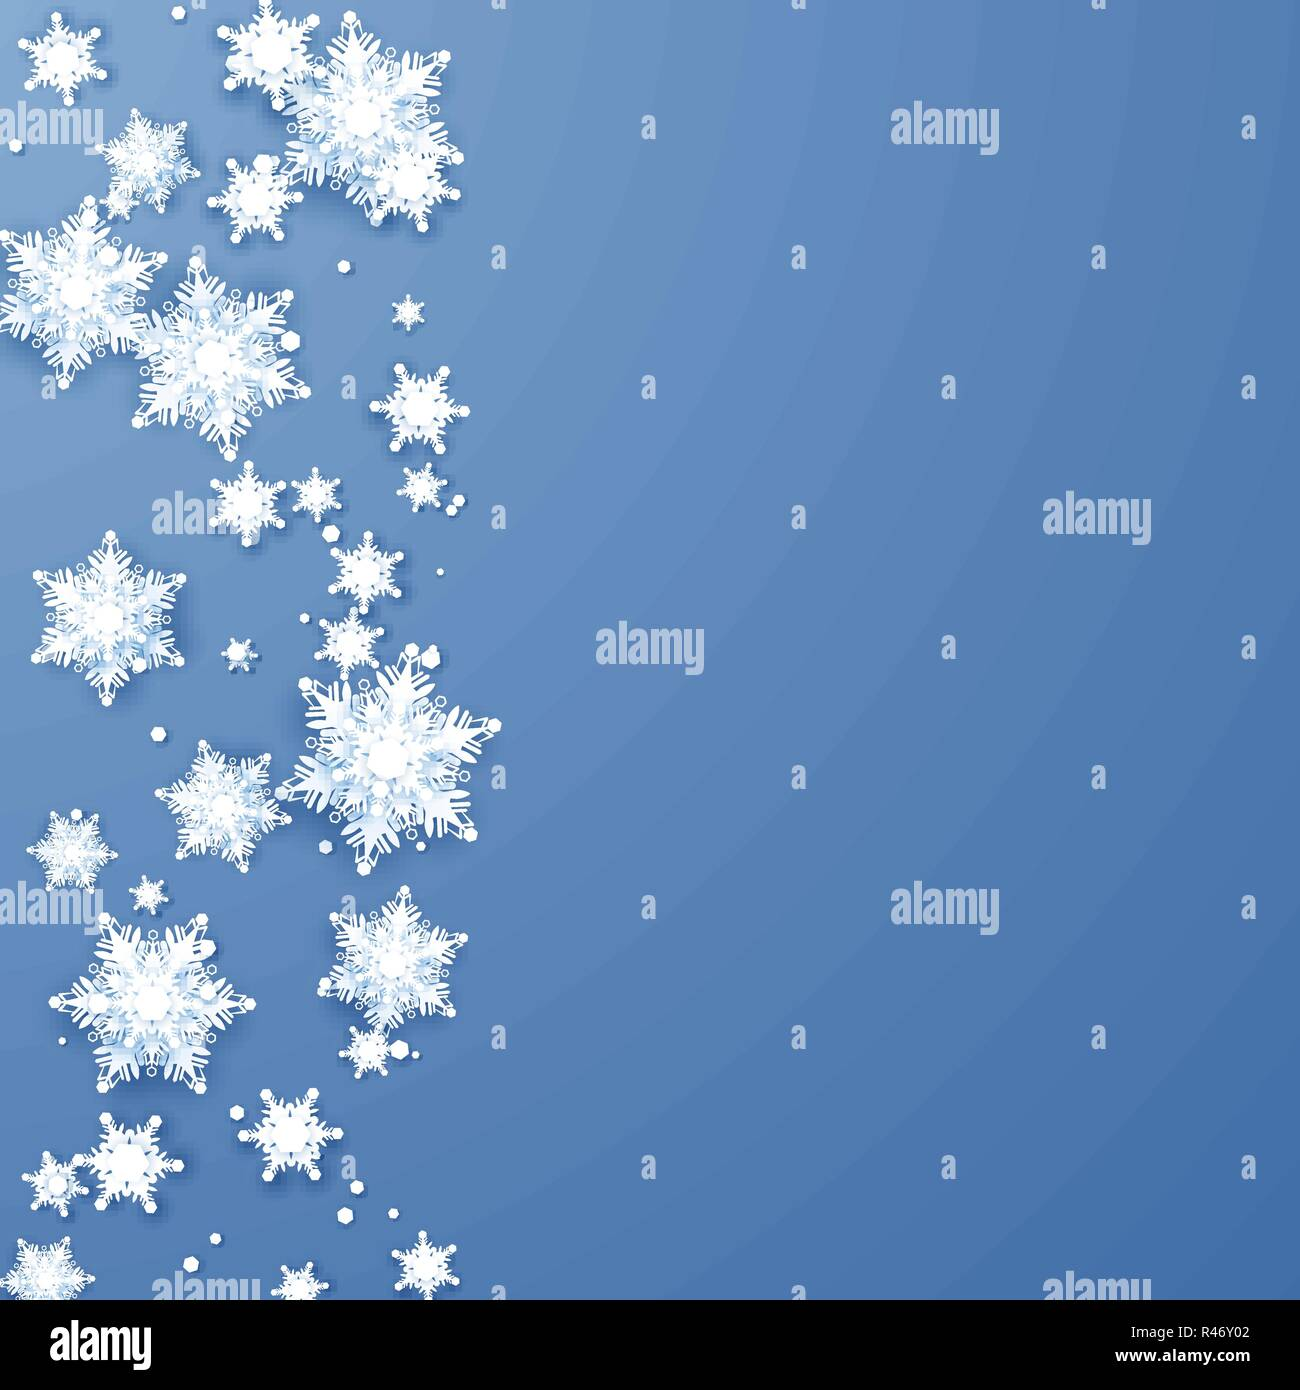 origami snowflakes border christmas and new year holiday decoration element vector illustration isolated on blue background